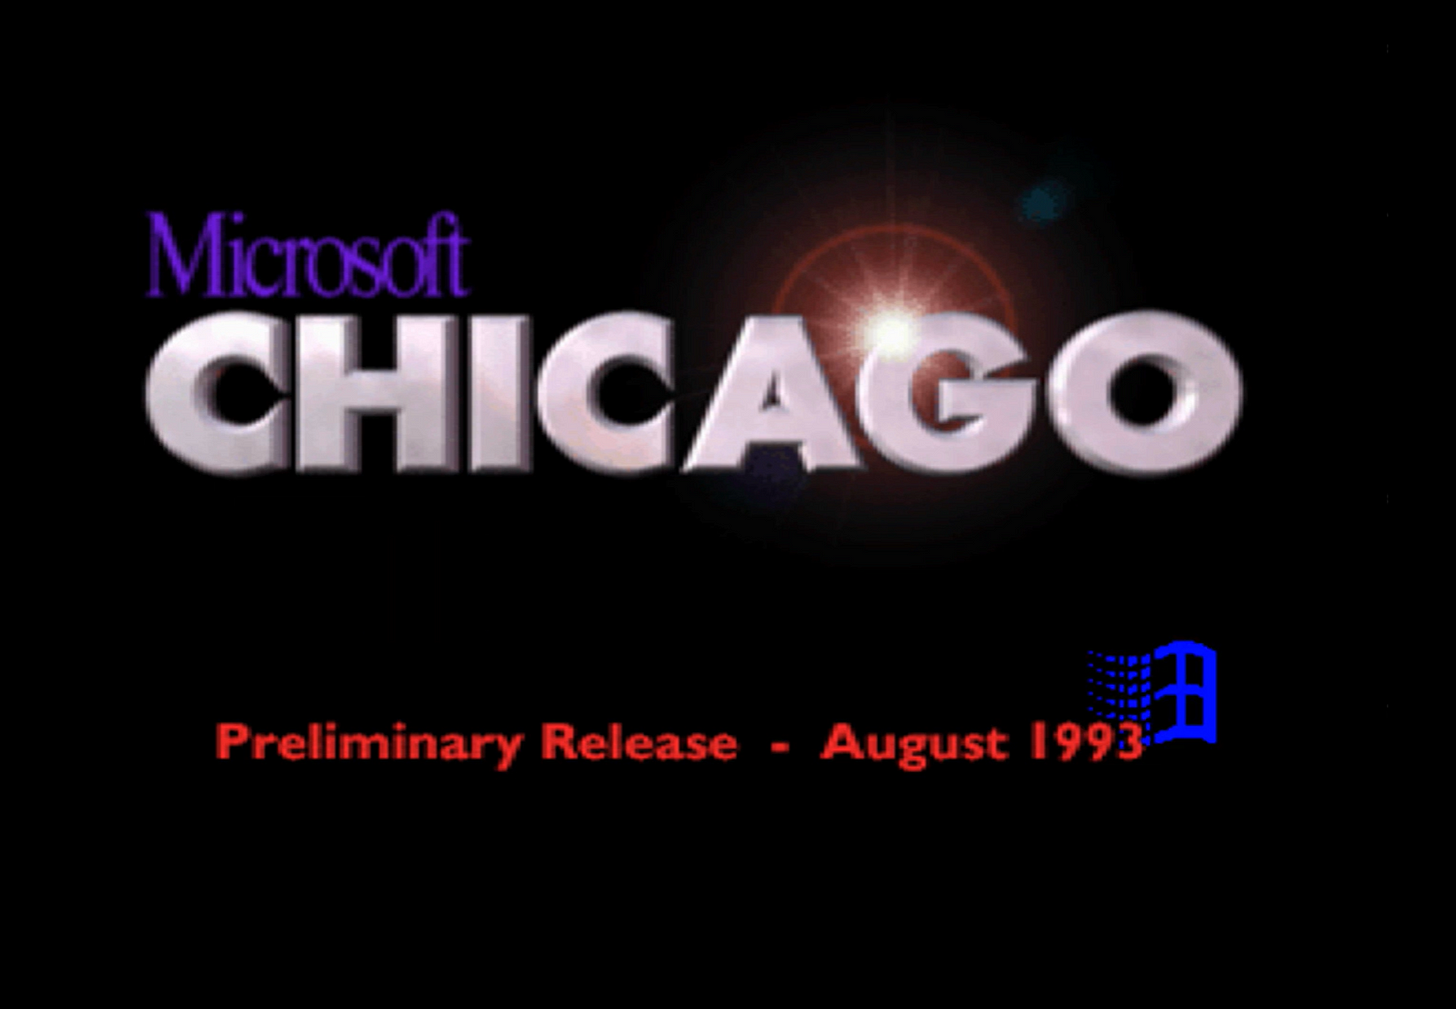 The Chicago boot screen August 1993.